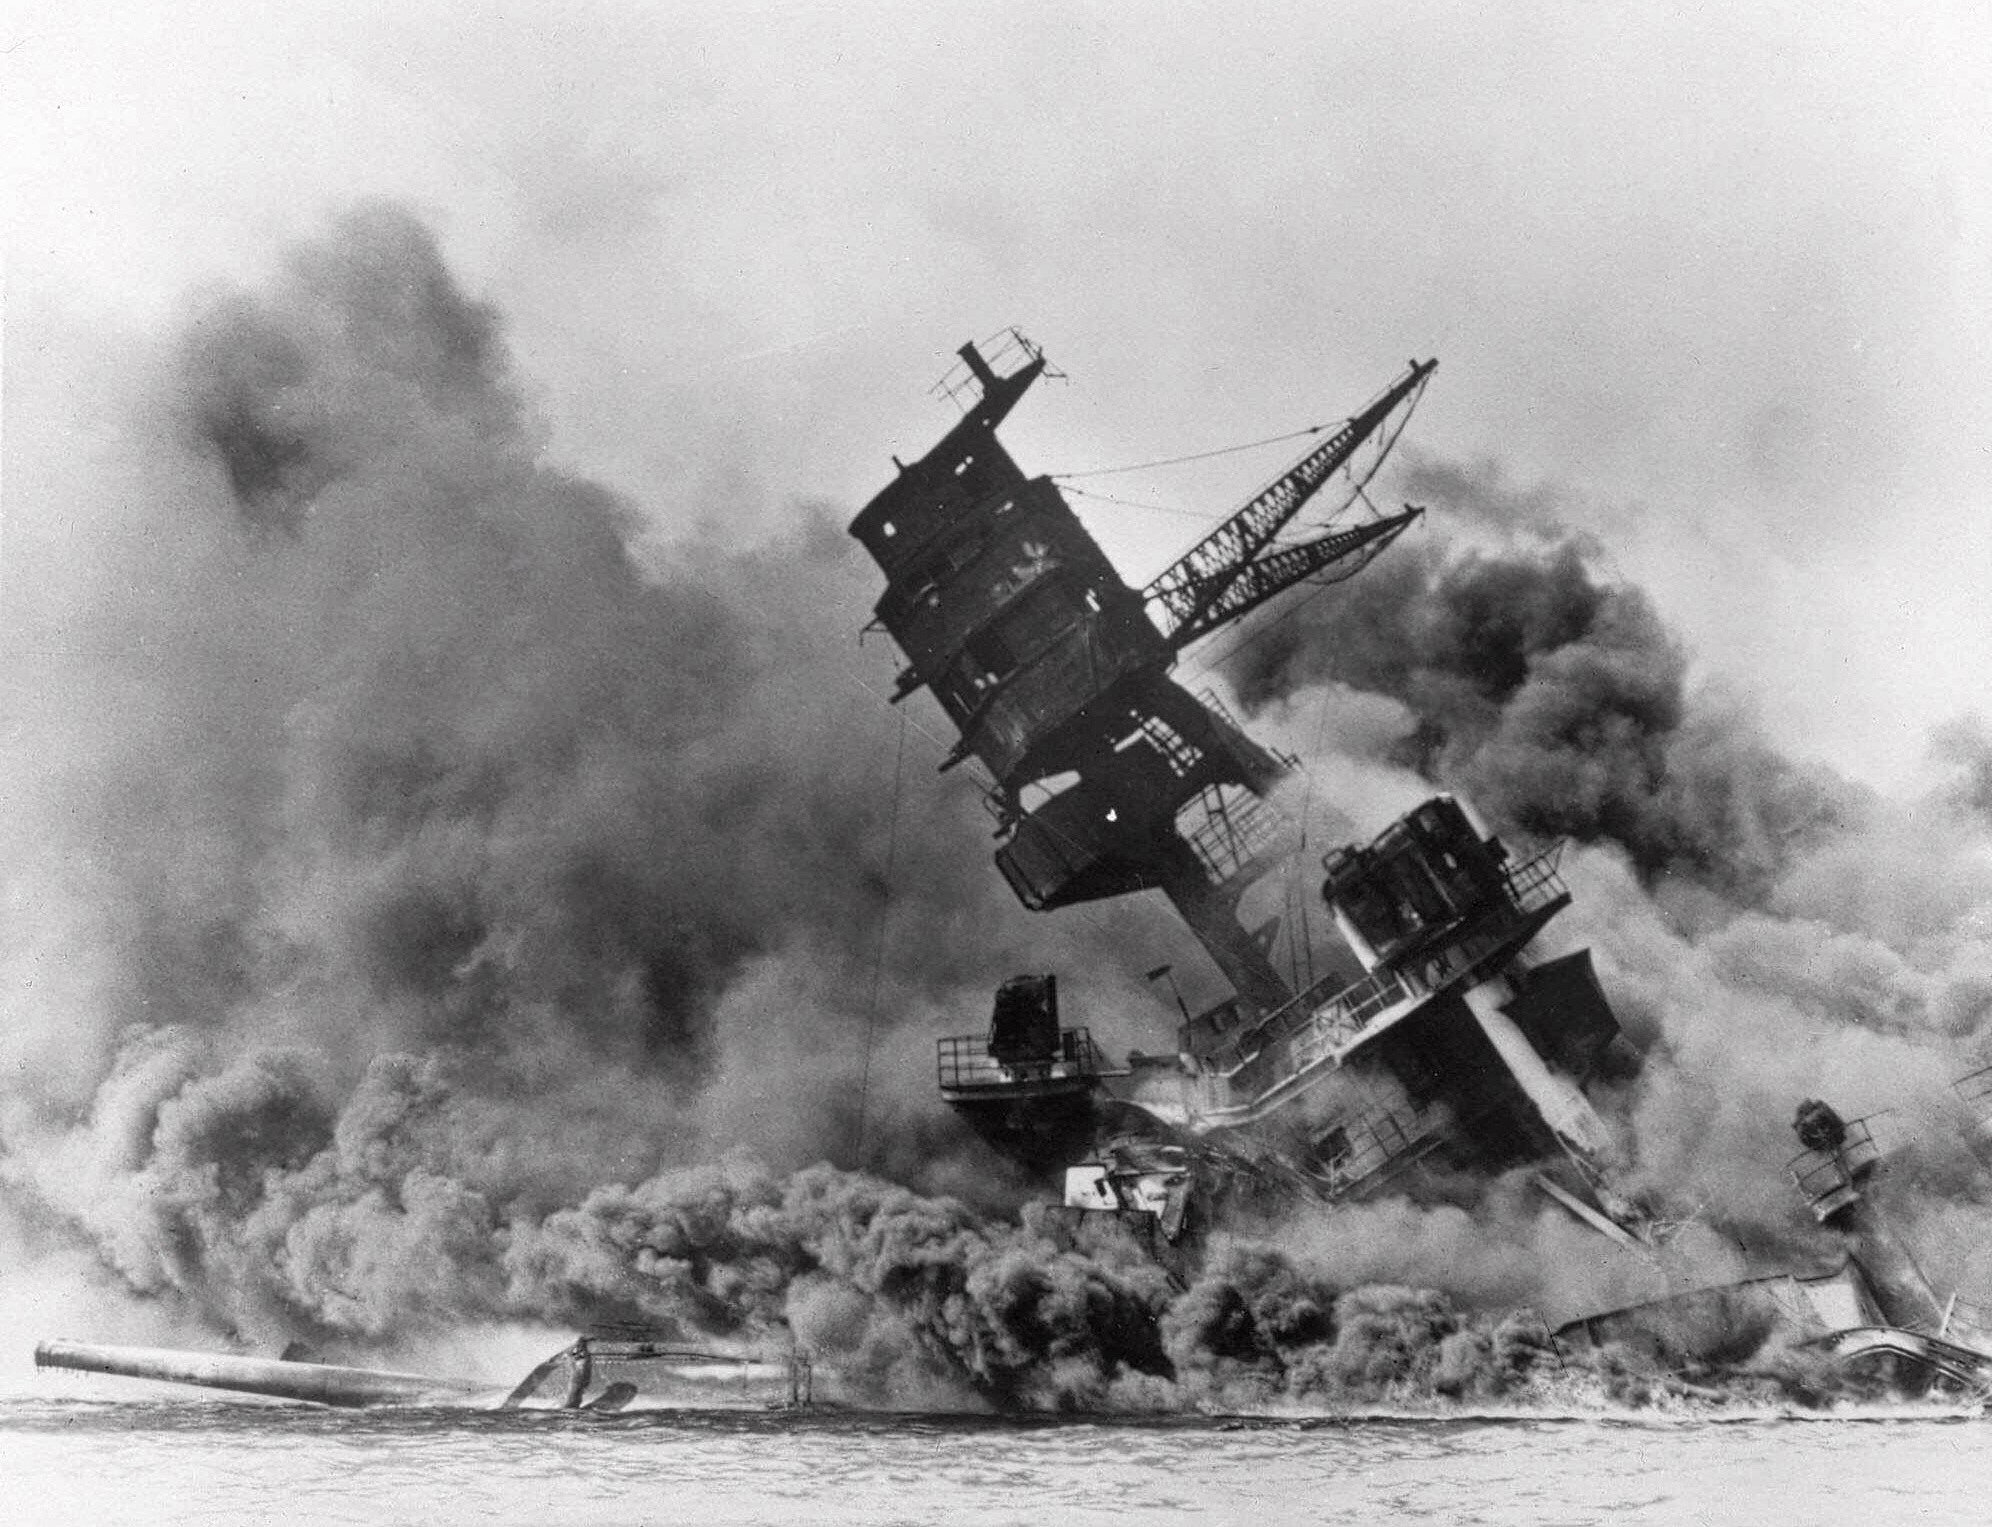 Relic from Pearl Harbor's USS Arizona may become exhibit in Jackson